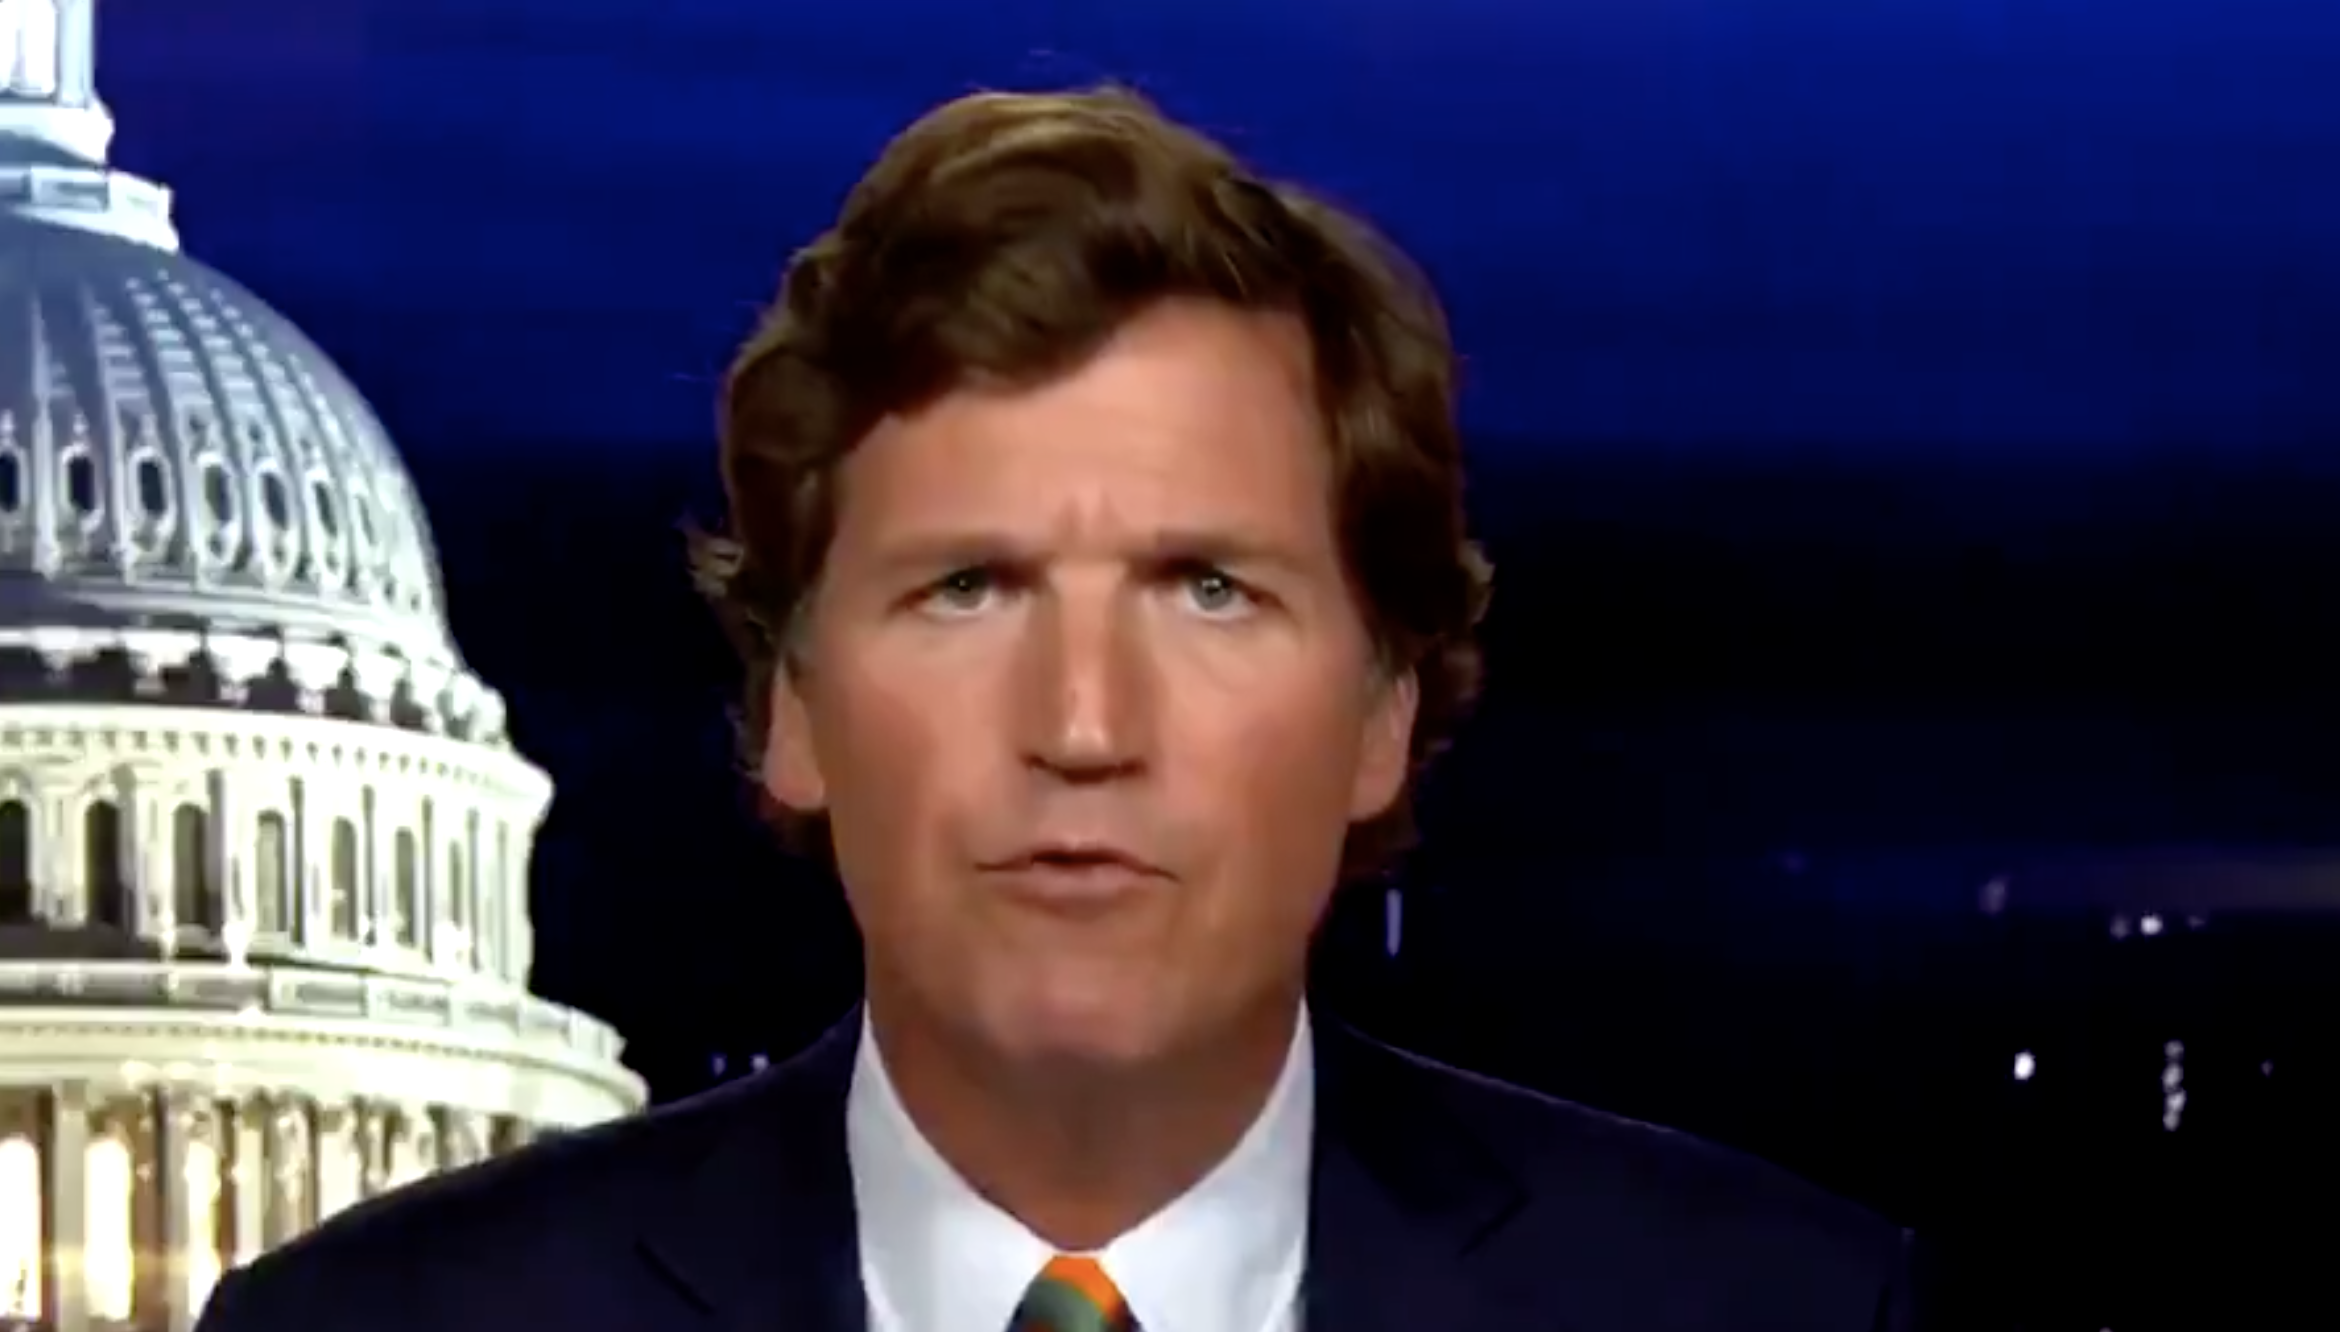 Tucker Carlson Just Threw the Republican Party Under the Bus With Bizarre Apology and People Have Theories